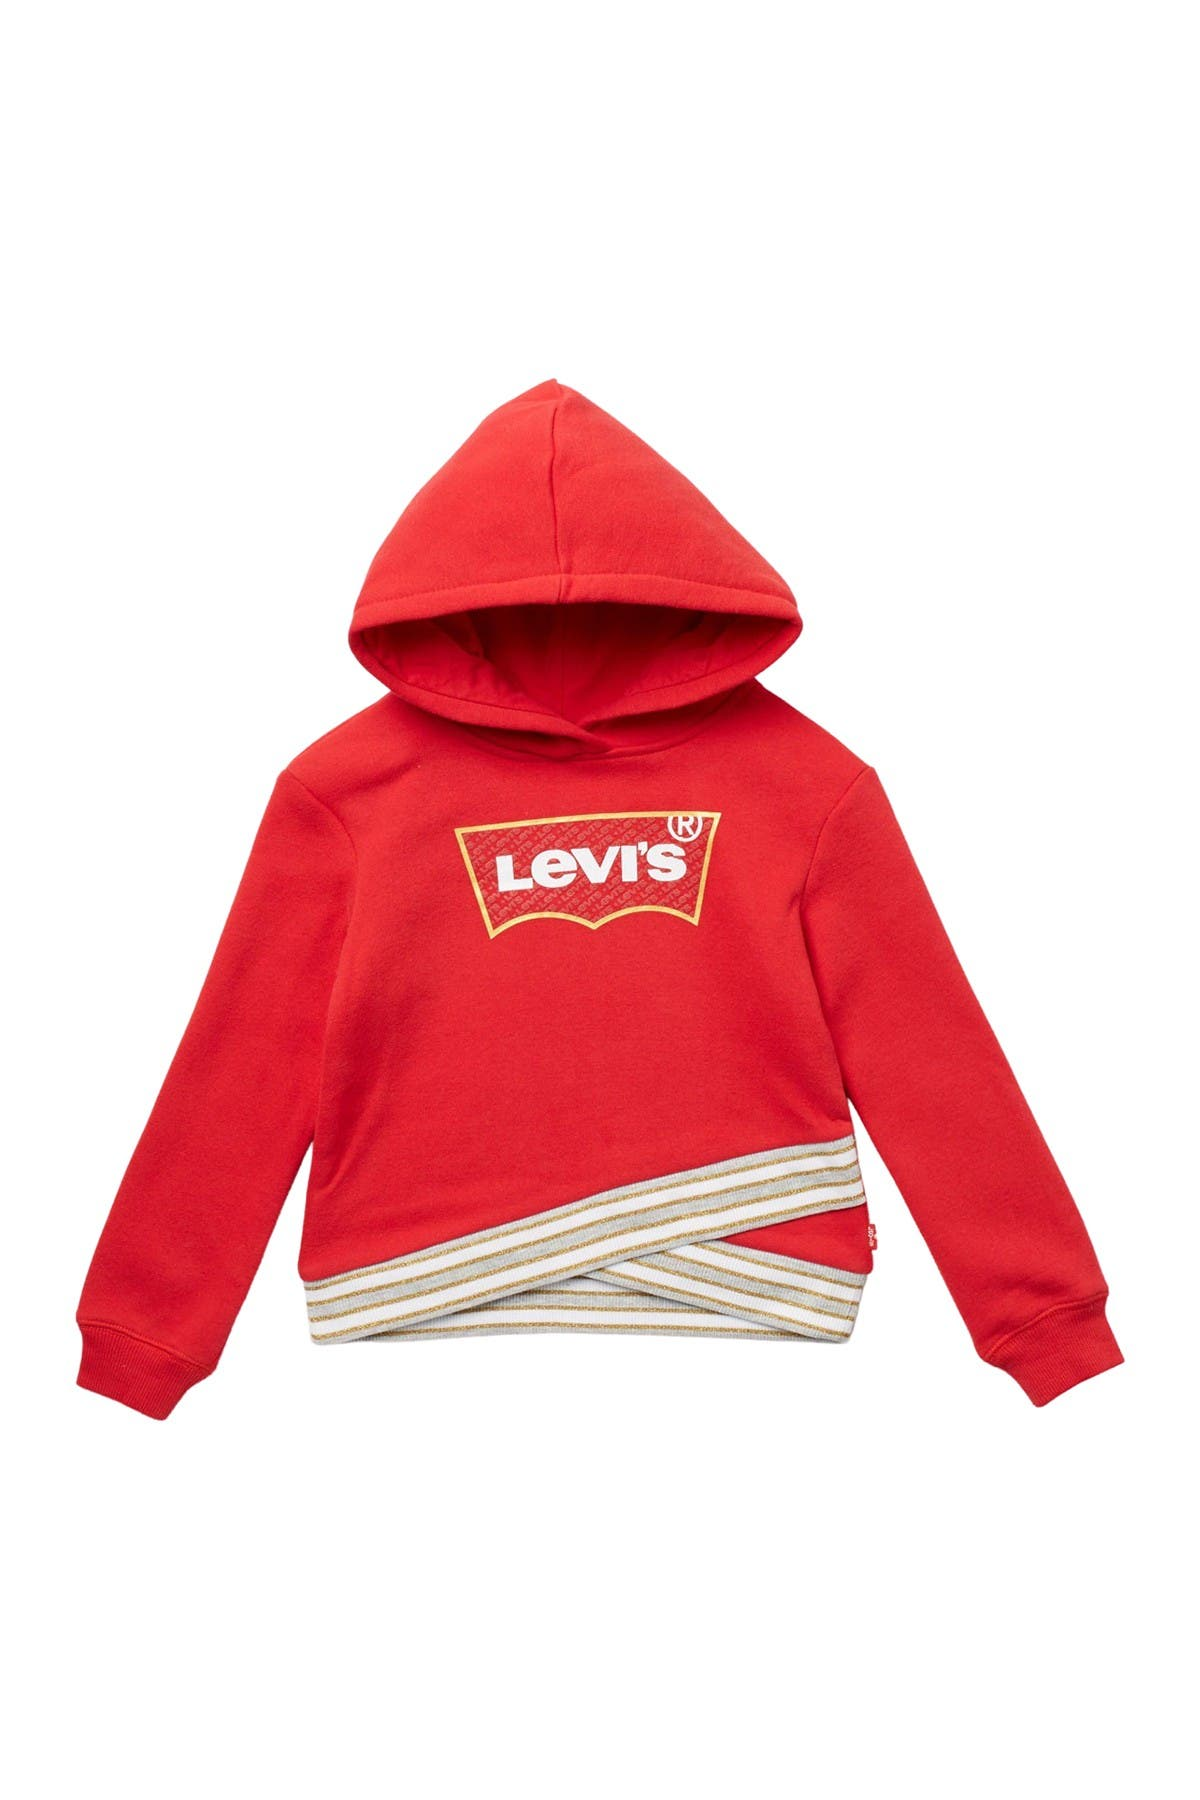 Image of Levi's Crossover Hoodie